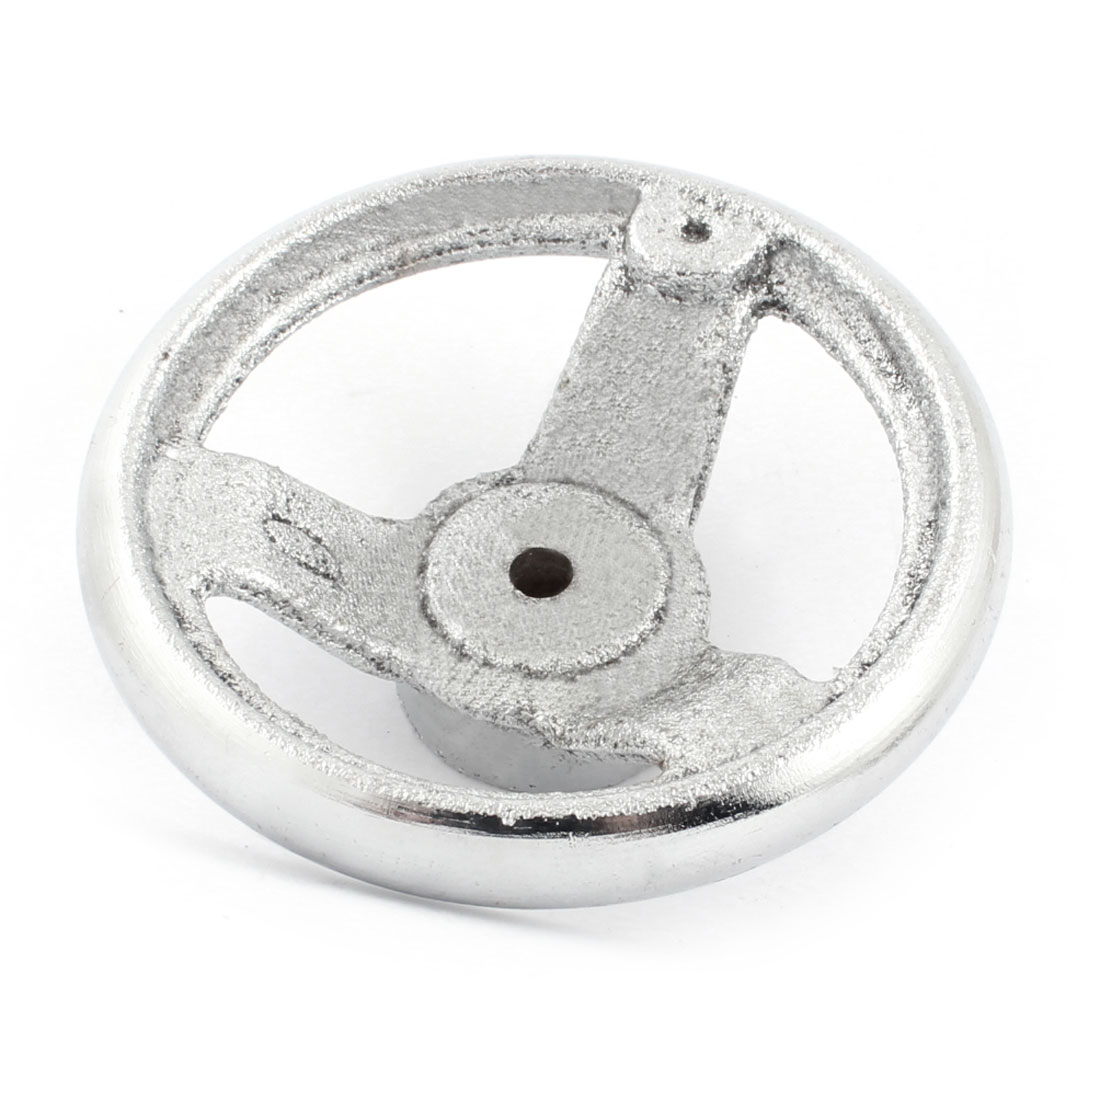 7mm Mounting Hole Three Spoke 100mm Diameter Round Silver Tone Iron Hand Wheel Handwheel for Milling Machine Lathe